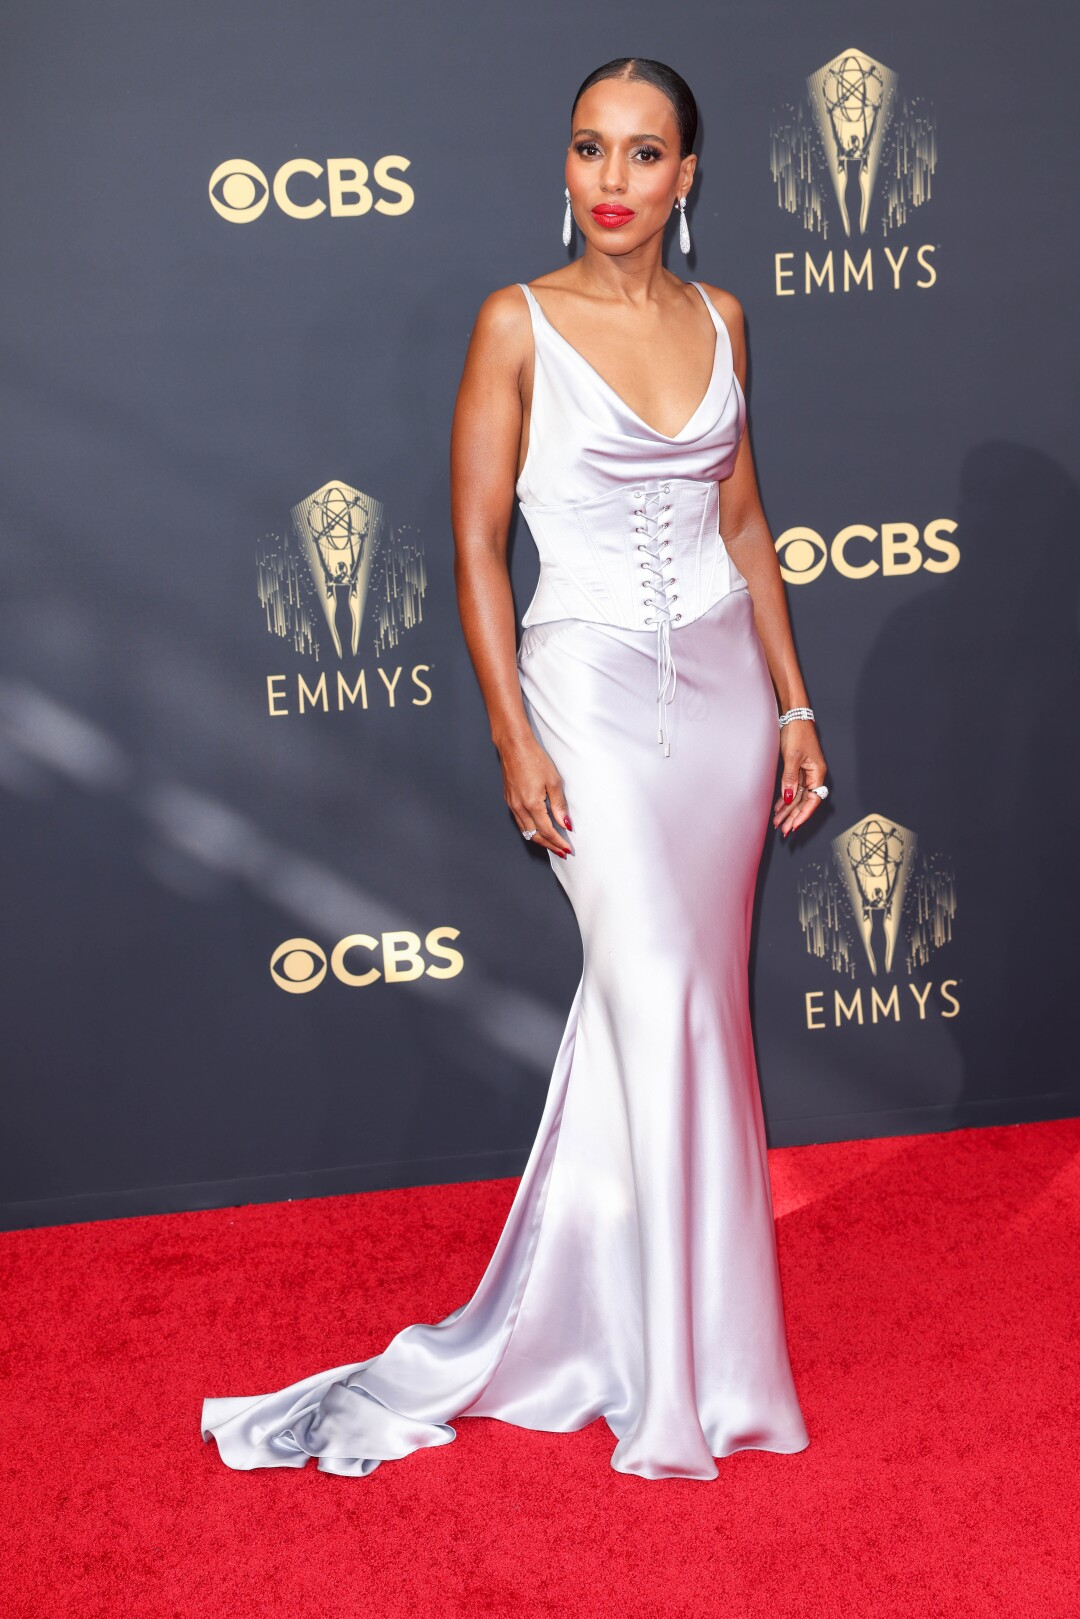 Kerry Washington on the red carpet in a lavender gown.